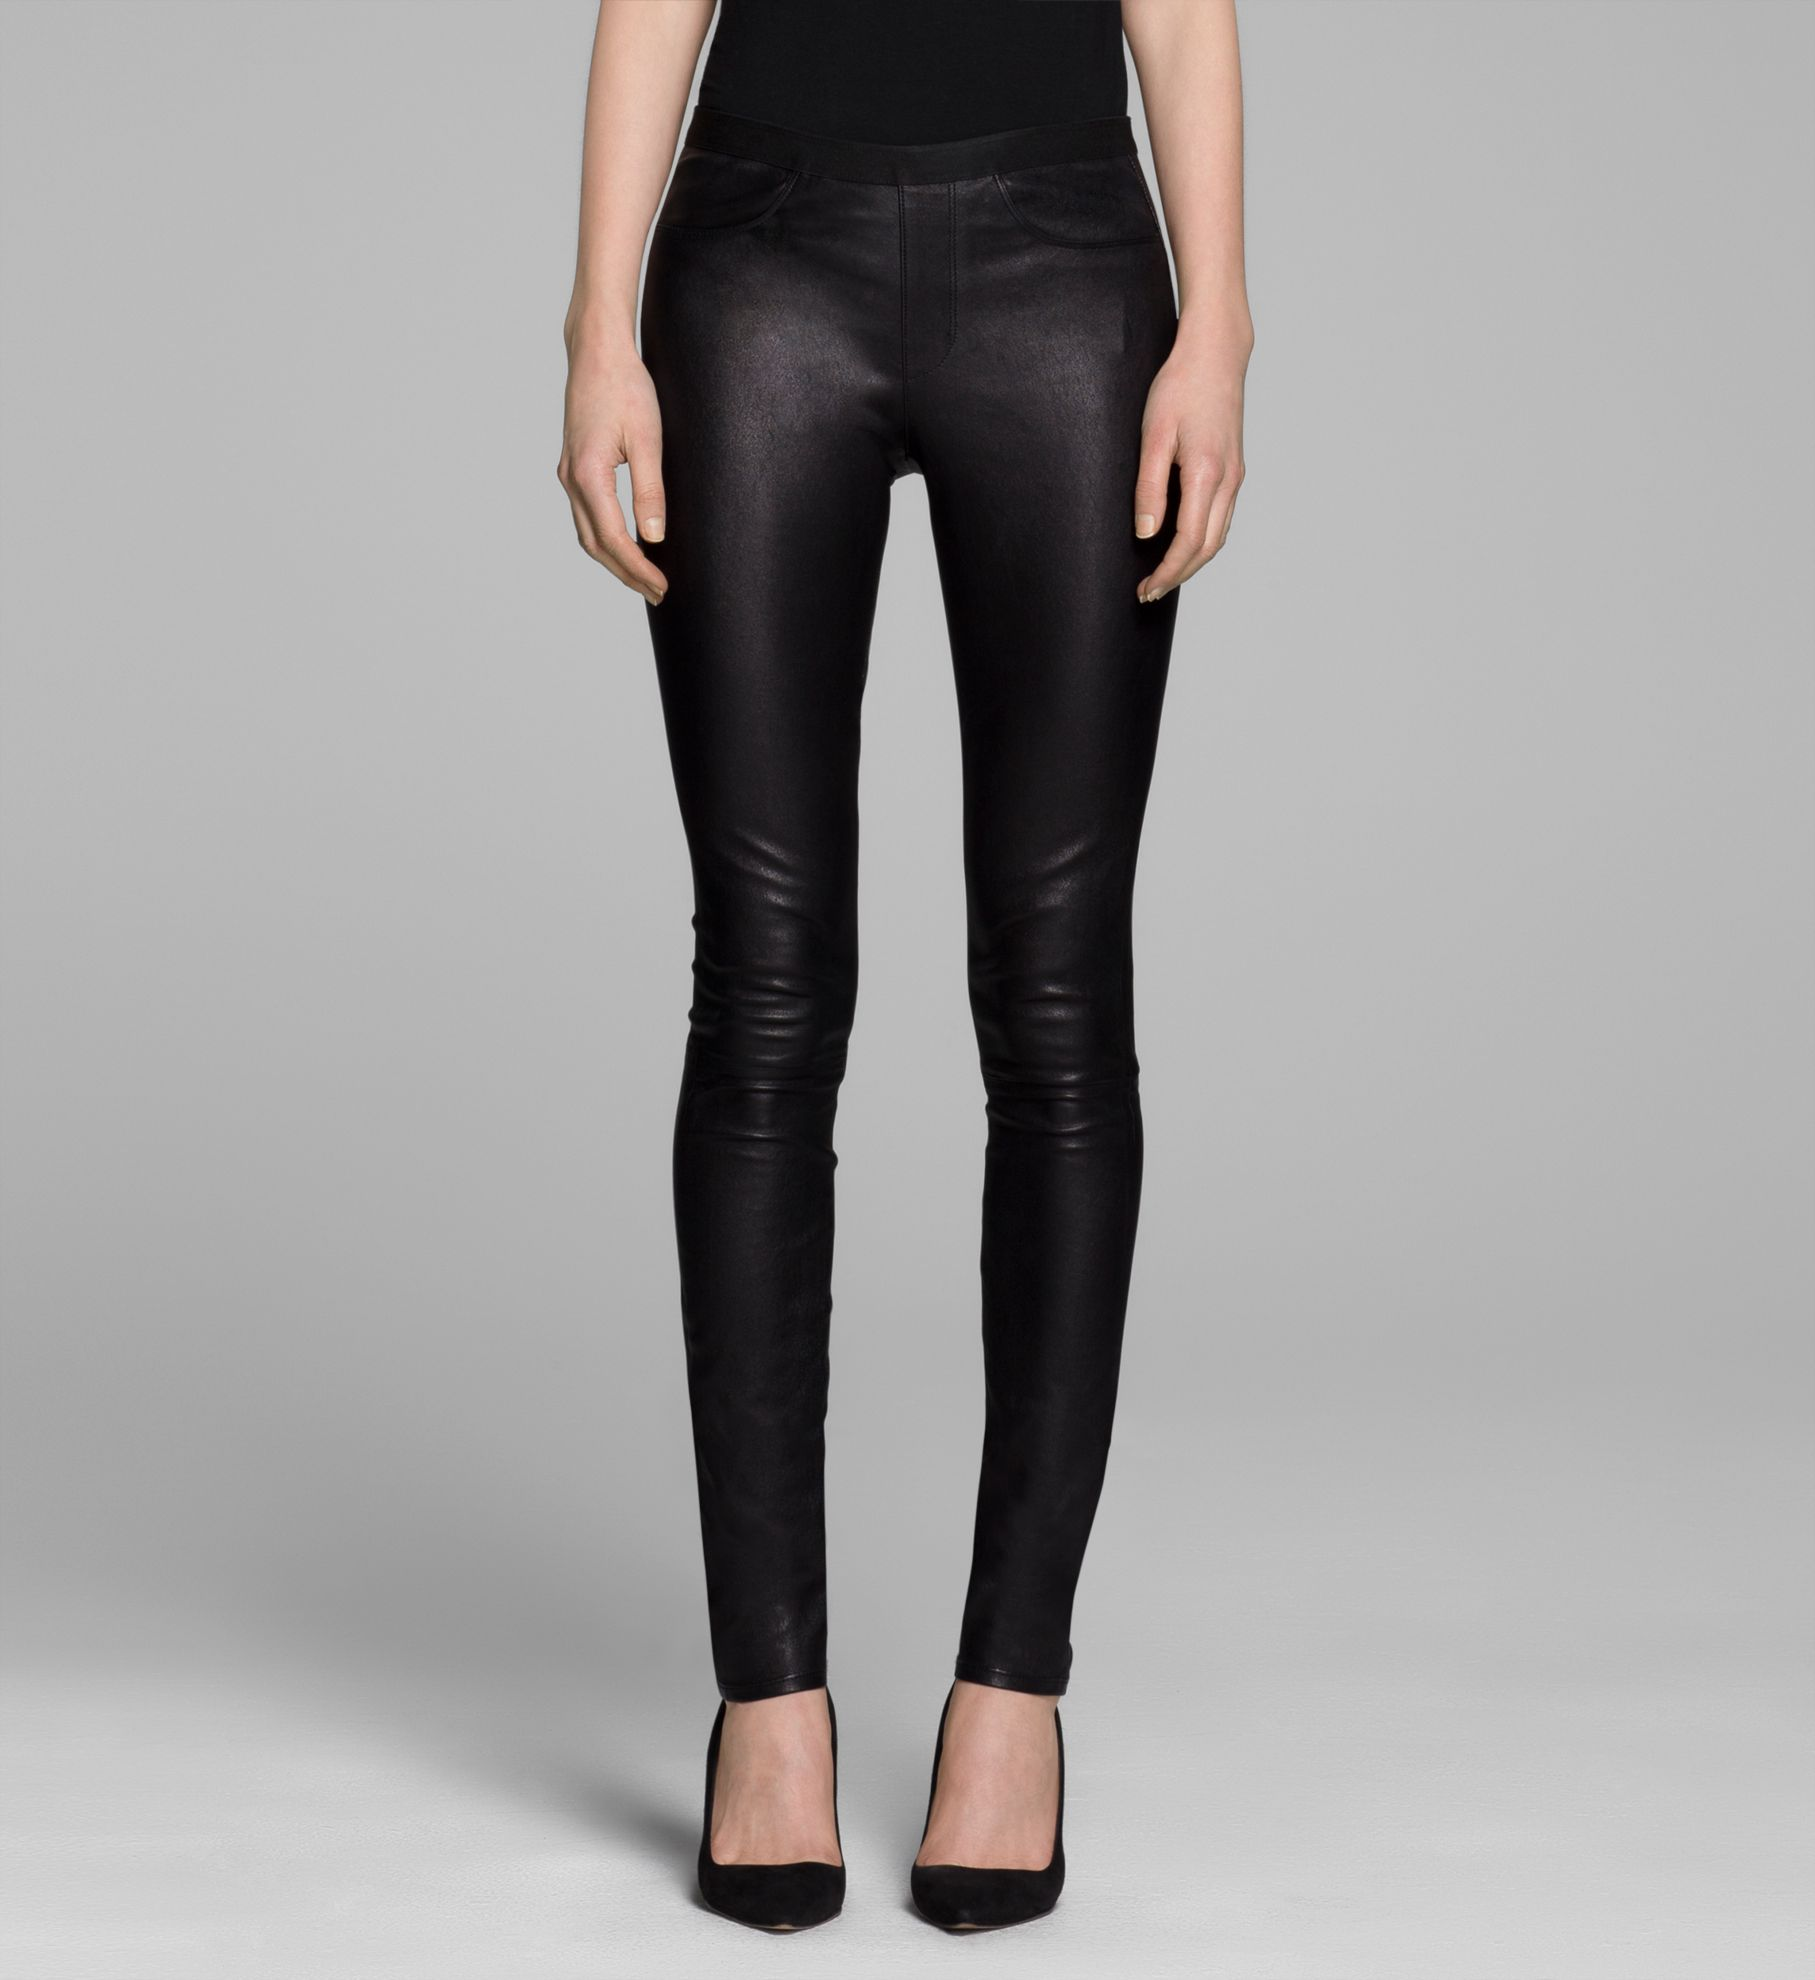 Find stretch leather leggings at ShopStyle. Shop the latest collection of stretch leather leggings from the most popular stores - all in one place.